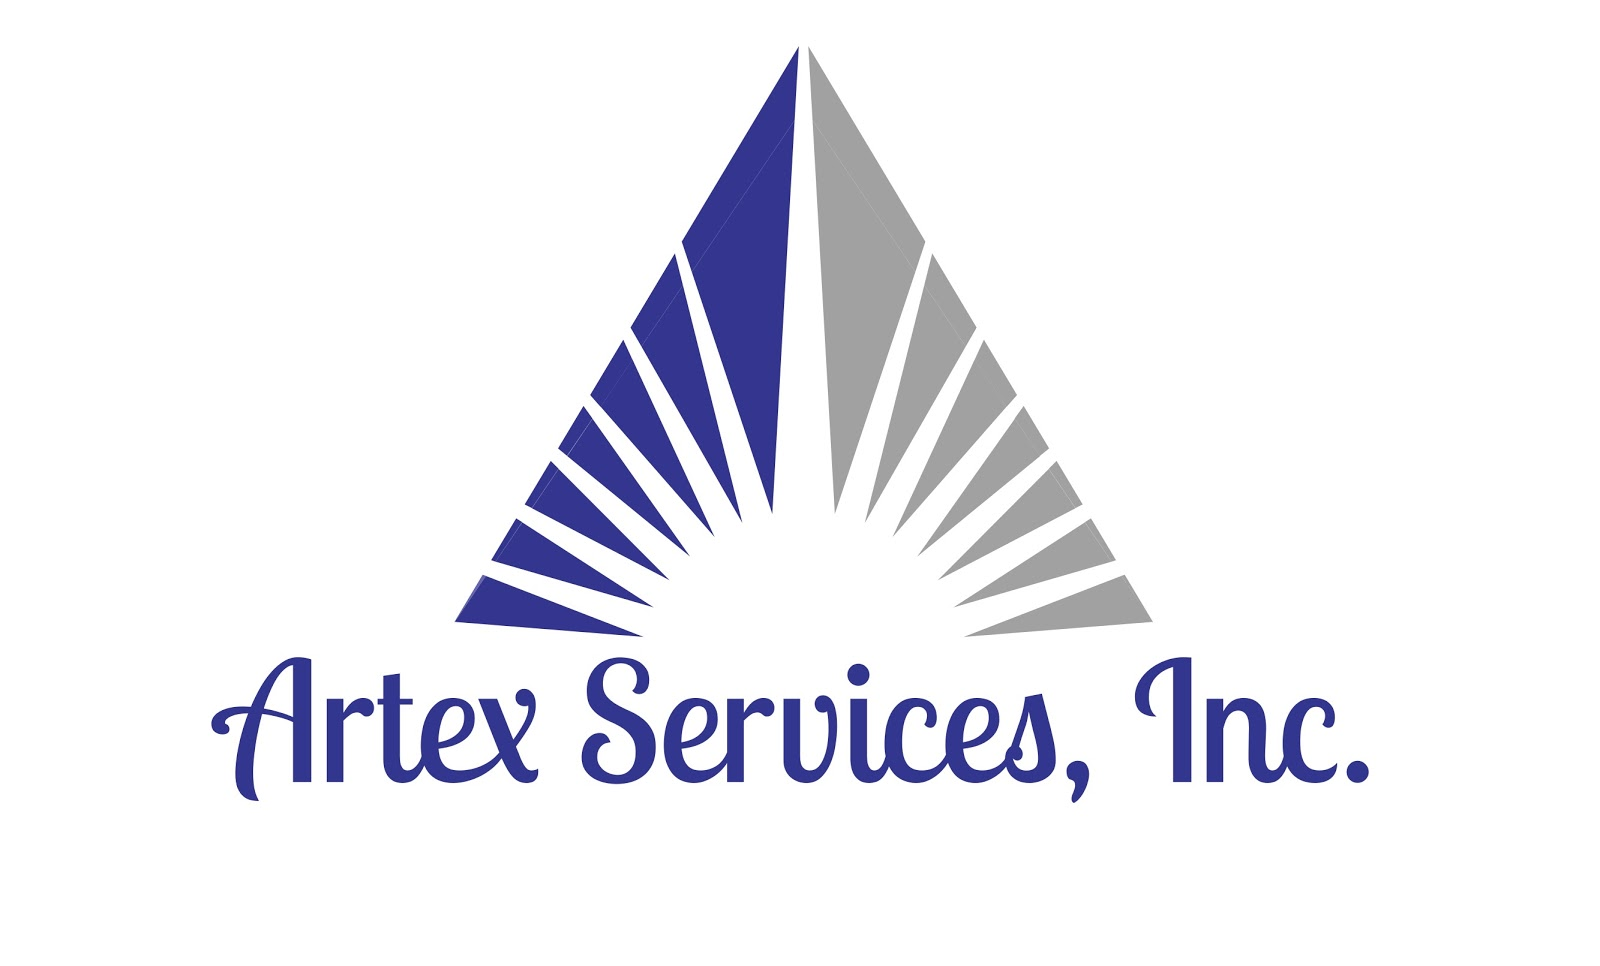 Artex Services, Inc